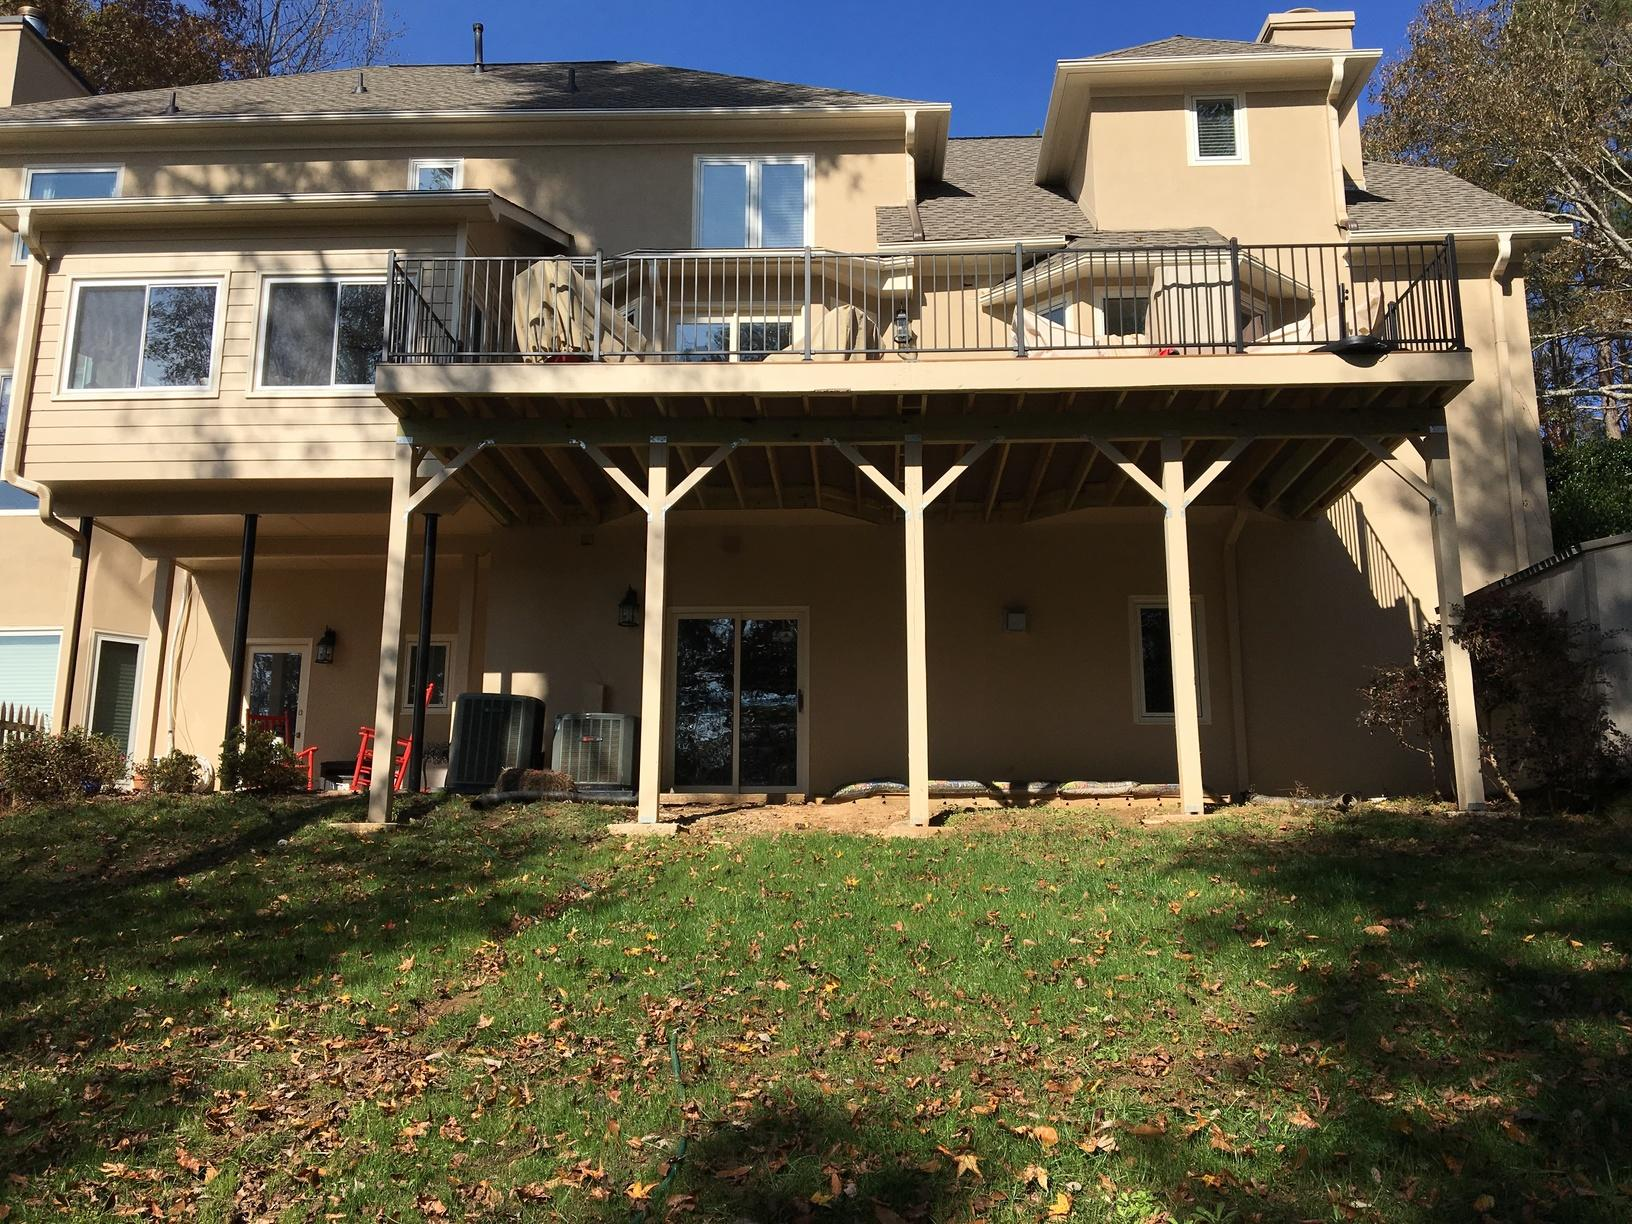 High Deck Overhaul in Woodstock, GA - After Photo